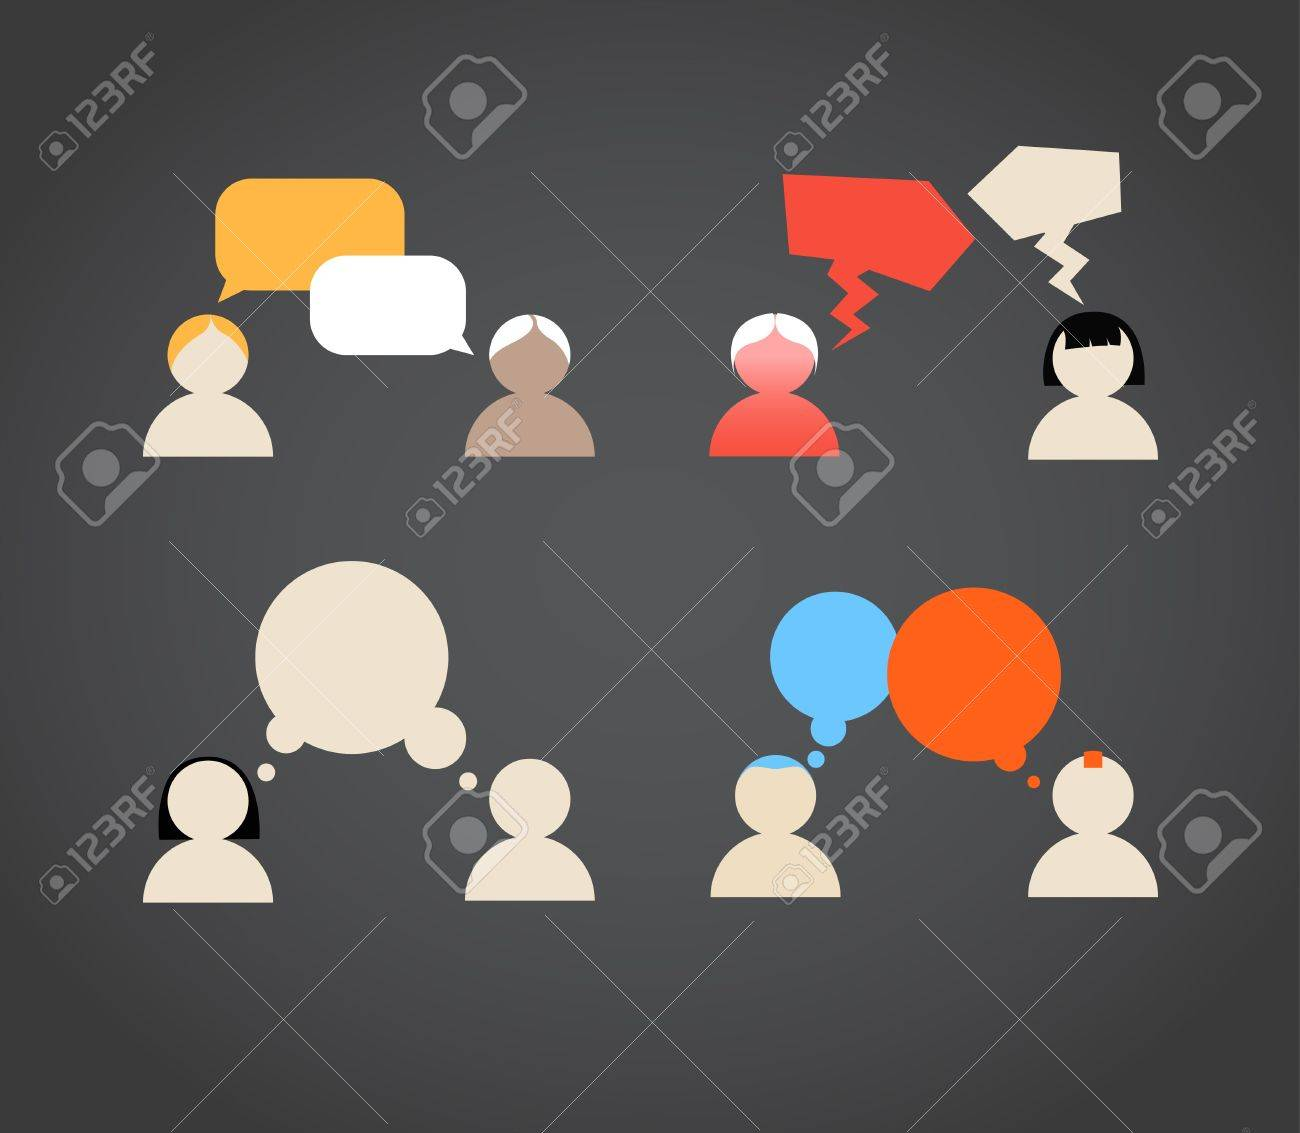 Sillhiuettes of talking people collection Stock Vector - 13407934